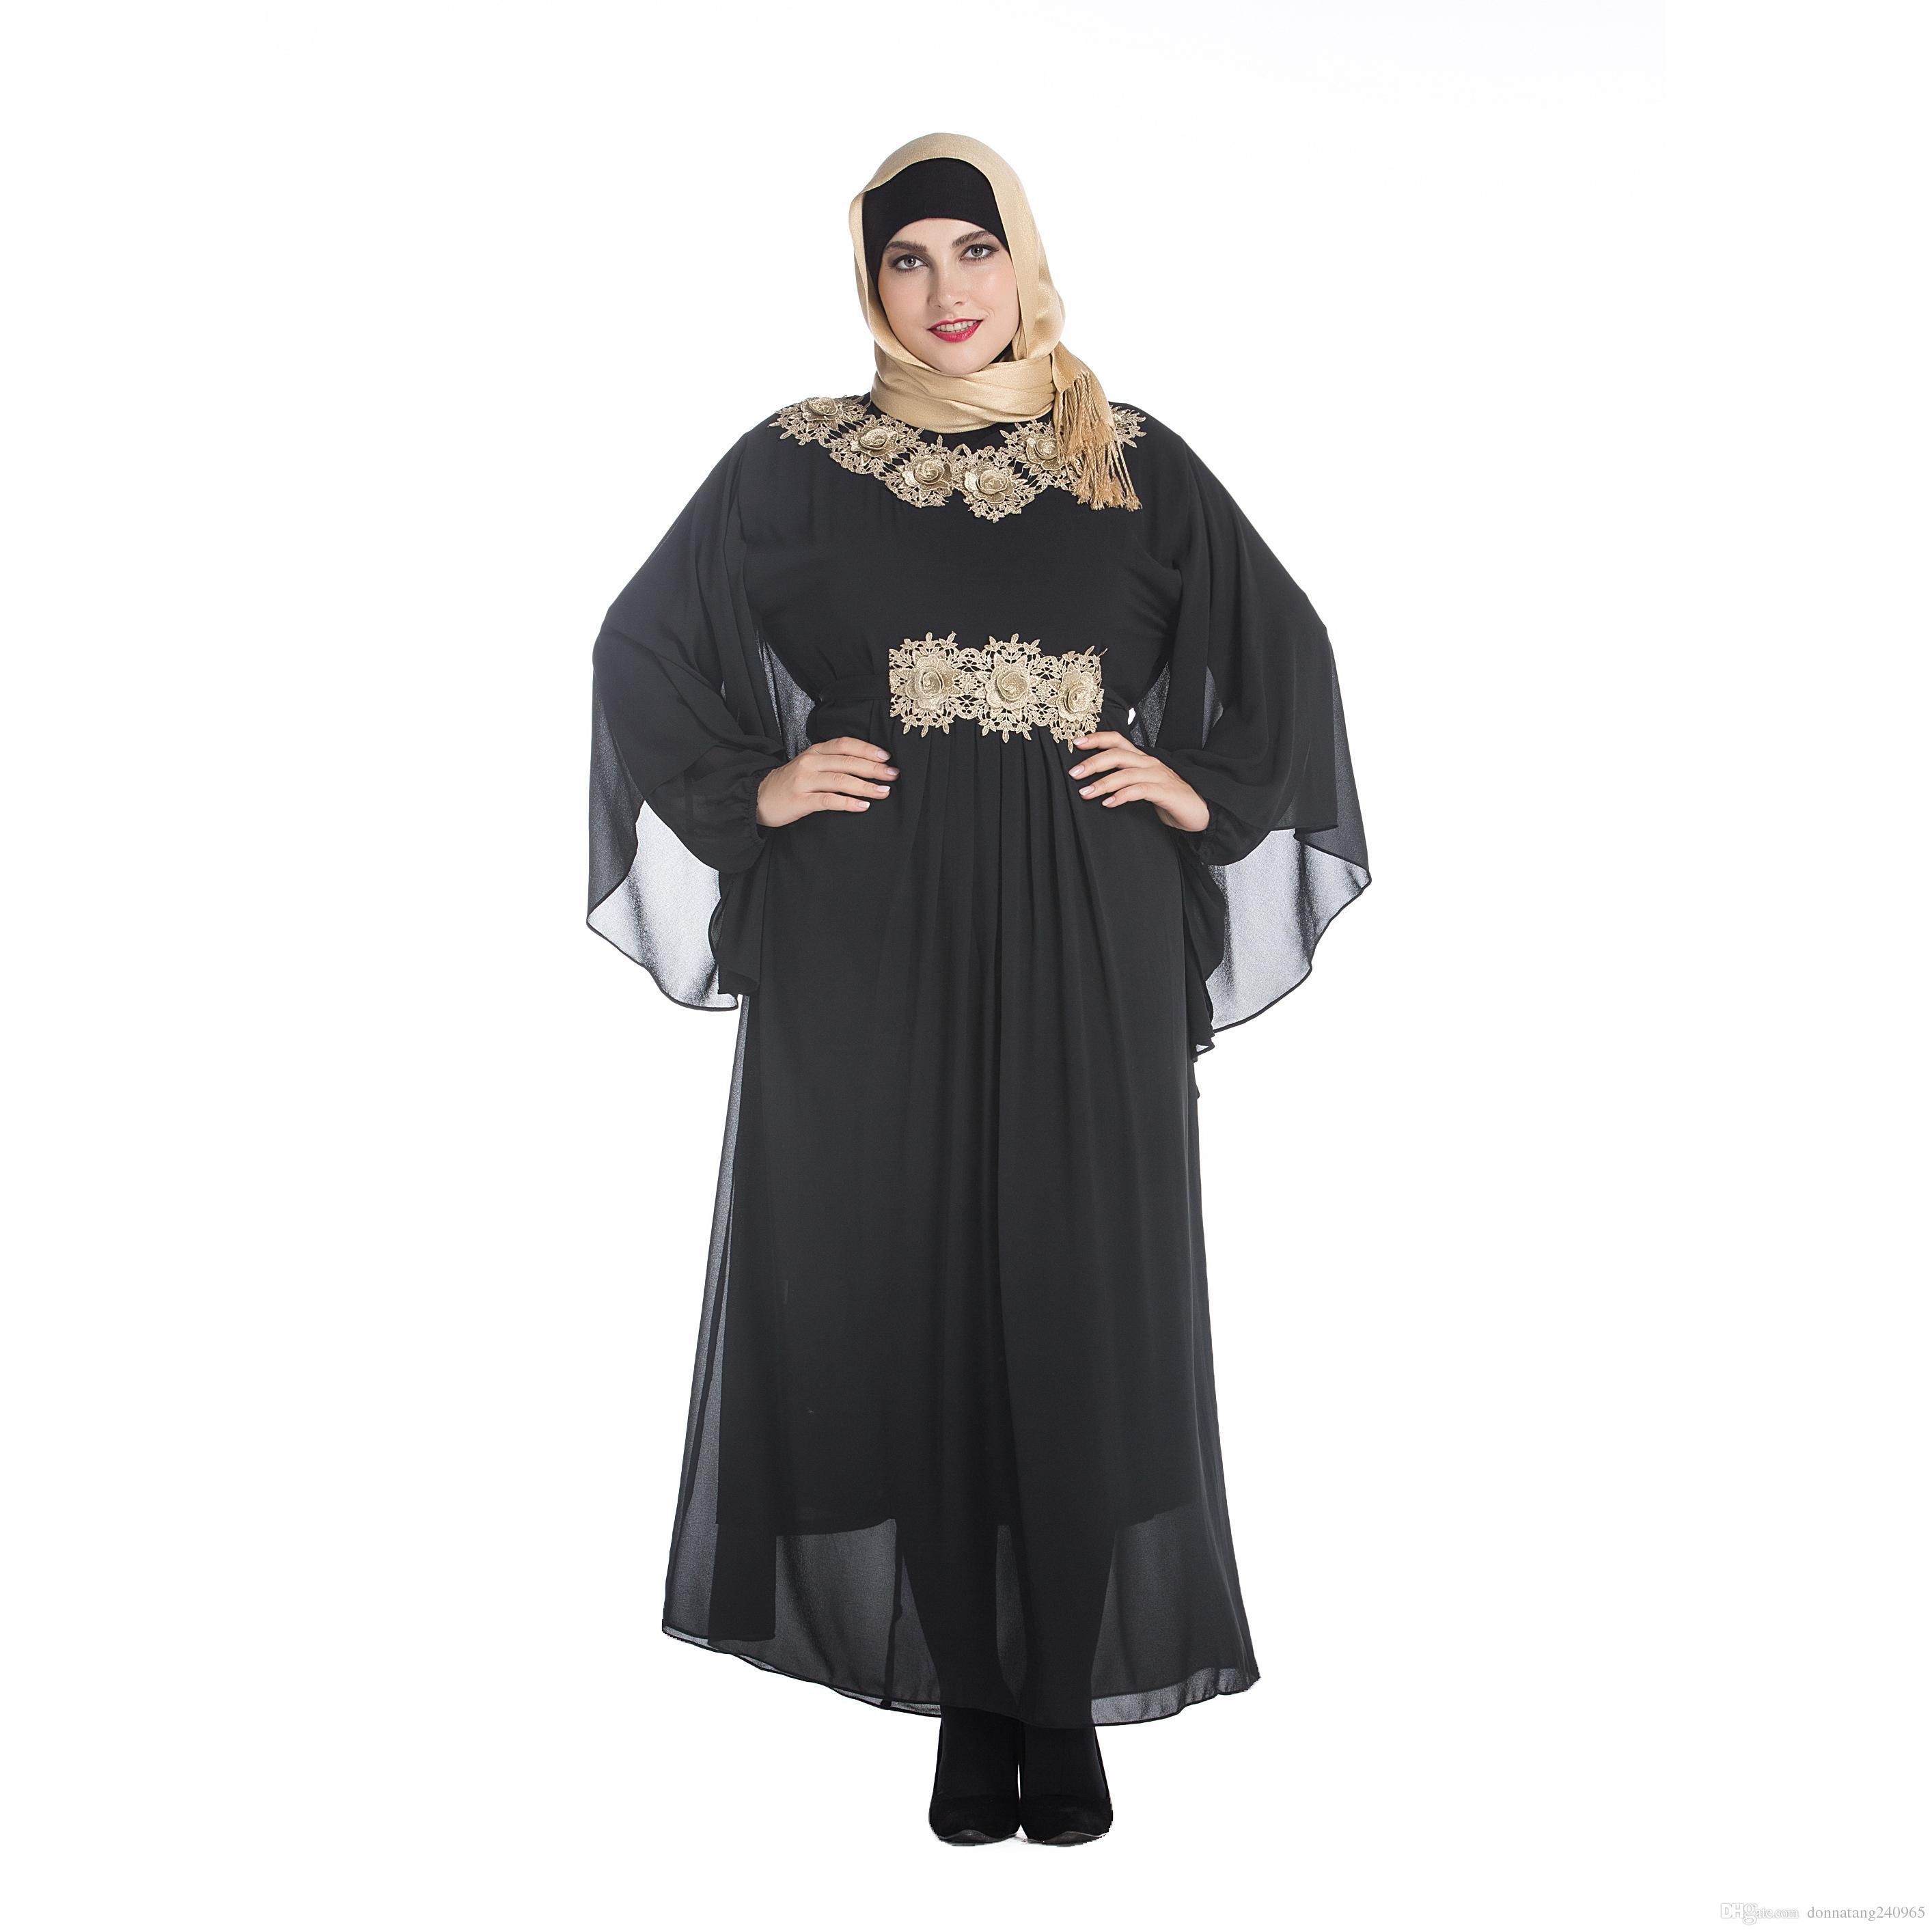 284b3085ff9 Big Size Fat Women Clothes Muslim Decals Malaysia Arab Robes Middle East  Female Bats Long Sleeve Plus Size Maxi Embroidered Chiffon Dress Dress  Summer ...